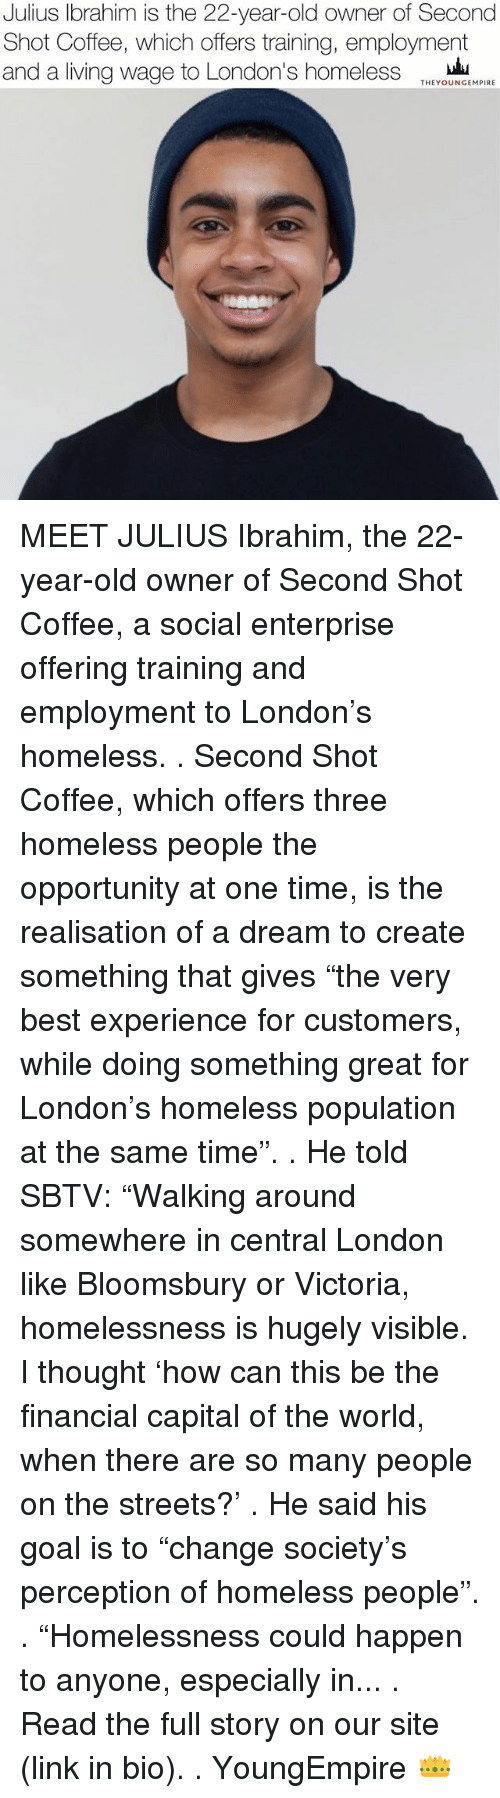 "A Dream, Homeless, and Memes: Julius Ibrahim is the 22-year-old owner of Second  Shot Coffee, which offers training, employment  and a living wage to London's homeless  THEYOUNGEMPIRE MEET JULIUS Ibrahim, the 22-year-old owner of Second Shot Coffee, a social enterprise offering training and employment to London's homeless. . Second Shot Coffee, which offers three homeless people the opportunity at one time, is the realisation of a dream to create something that gives ""the very best experience for customers, while doing something great for London's homeless population at the same time"". . He told SBTV: ""Walking around somewhere in central London like Bloomsbury or Victoria, homelessness is hugely visible. I thought 'how can this be the financial capital of the world, when there are so many people on the streets?' . He said his goal is to ""change society's perception of homeless people"". . ""Homelessness could happen to anyone, especially in... . Read the full story on our site (link in bio). . YoungEmpire 👑"